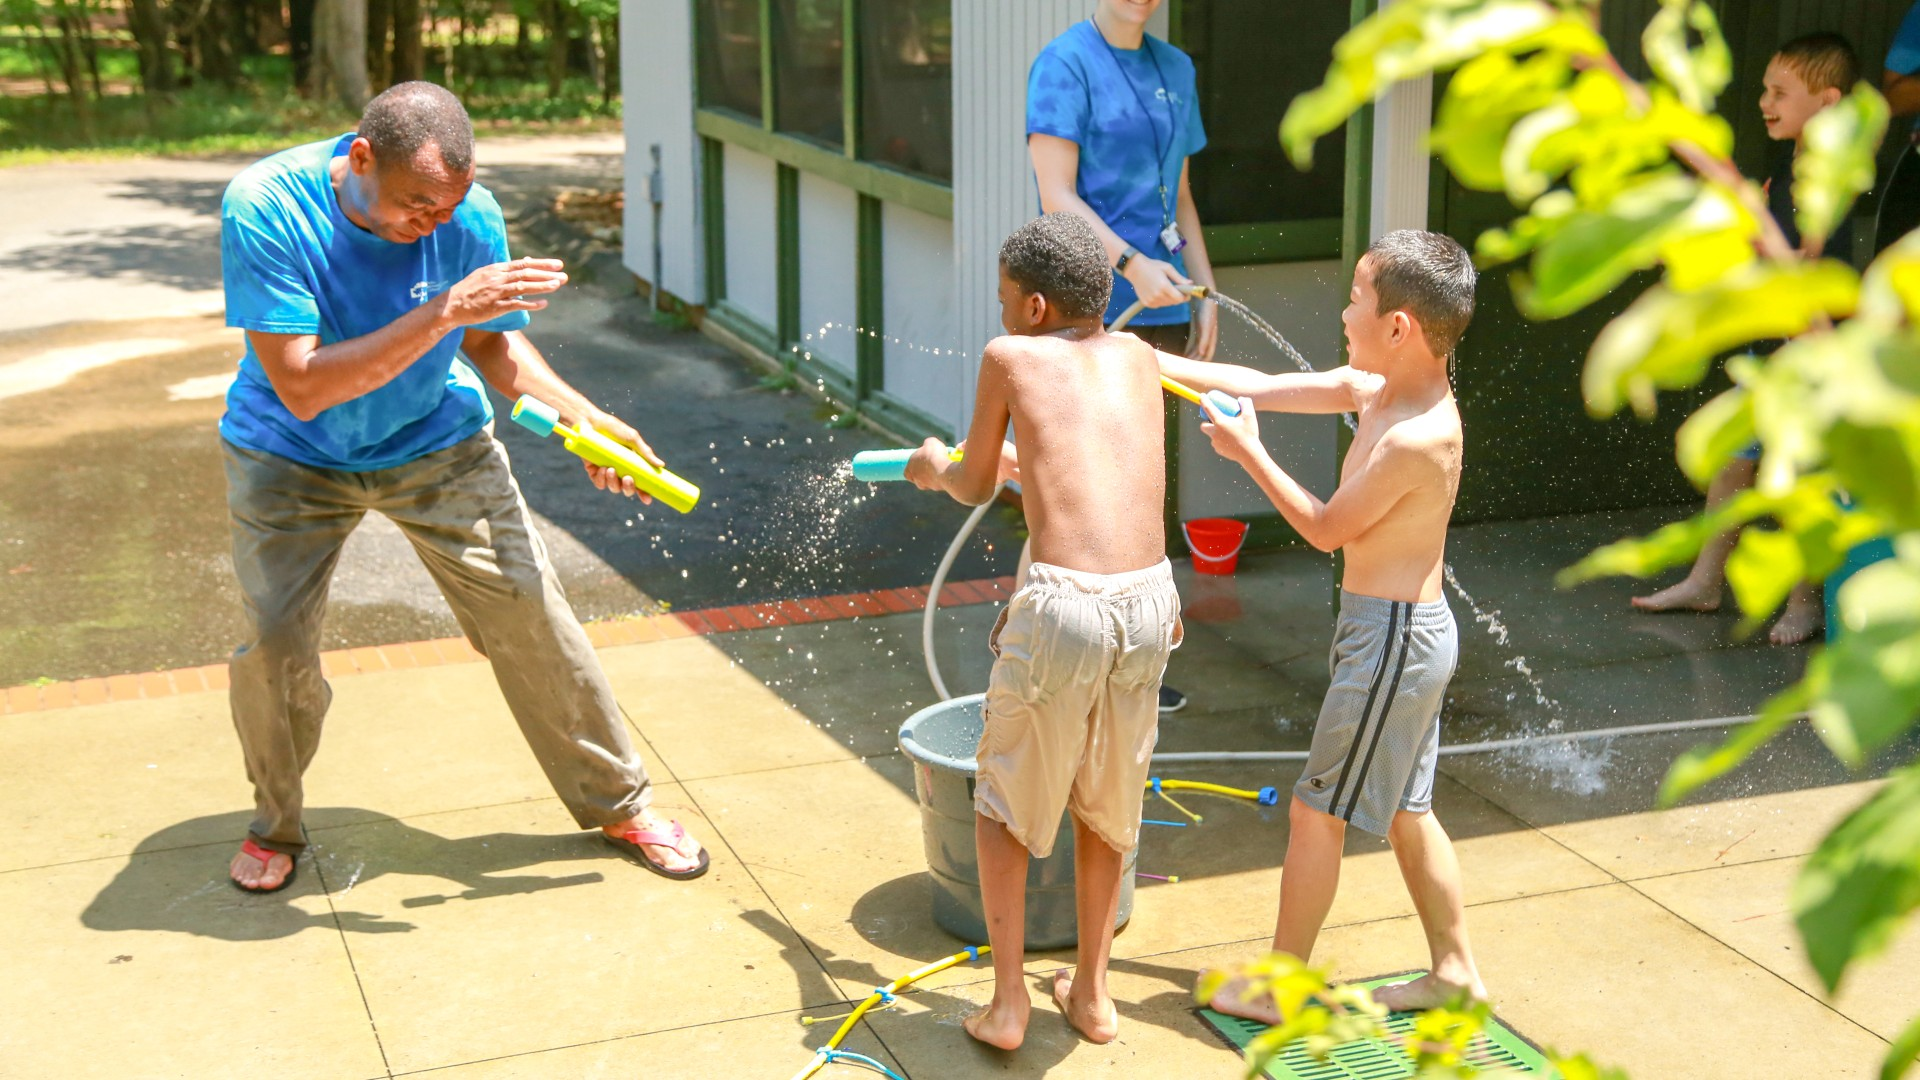 Kids playing with a water hose during a summer camp